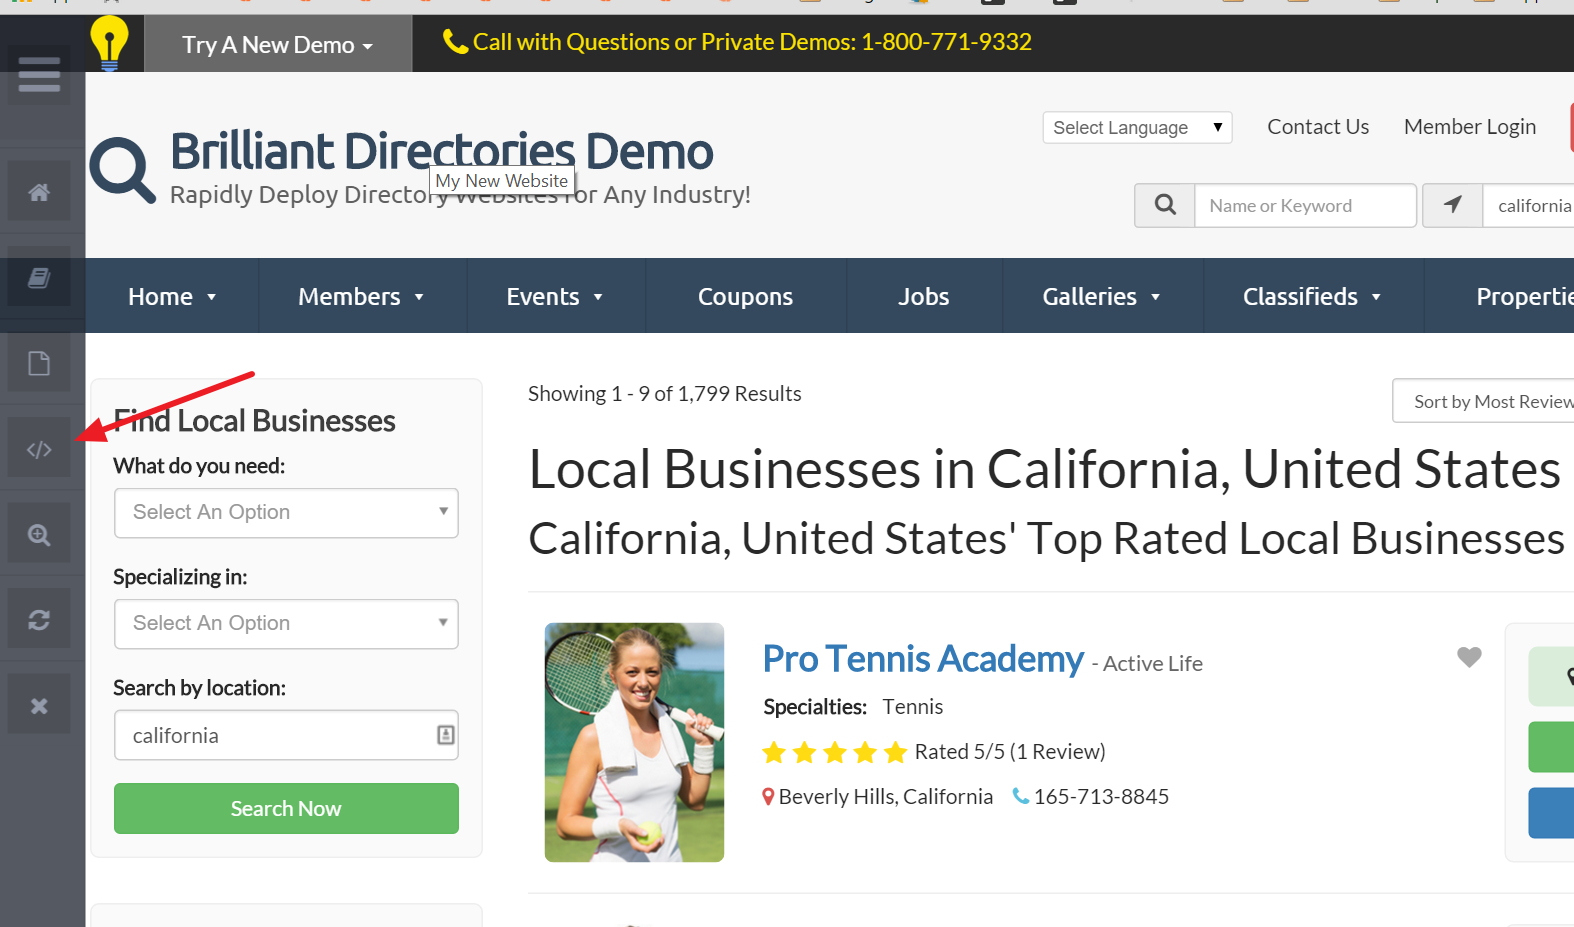 Brilliant Directories - Editing The SEO Of Member Search Results ...